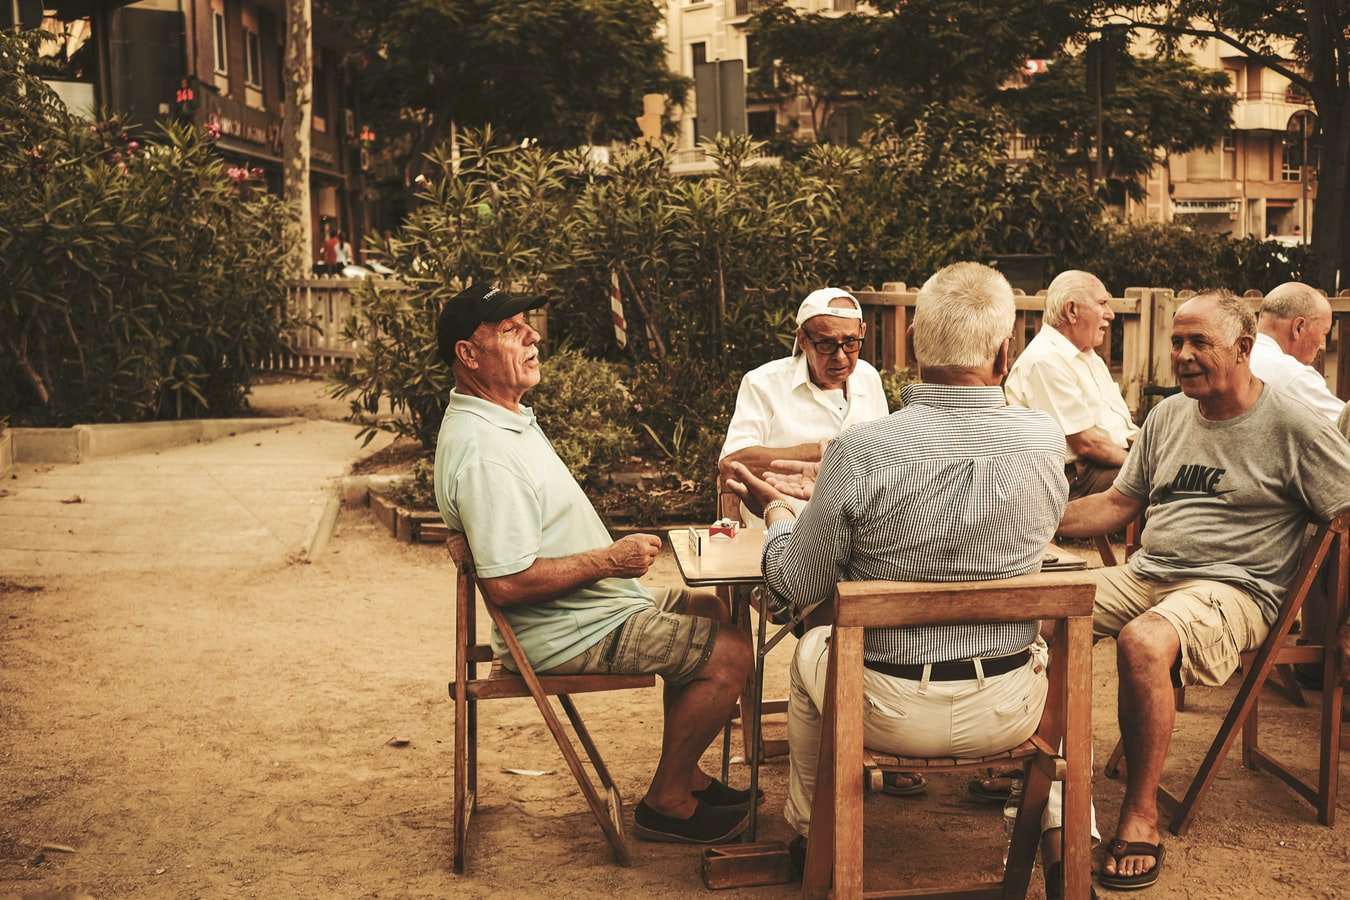 Men sitting outside of their respite care facility enjoying nice conversation